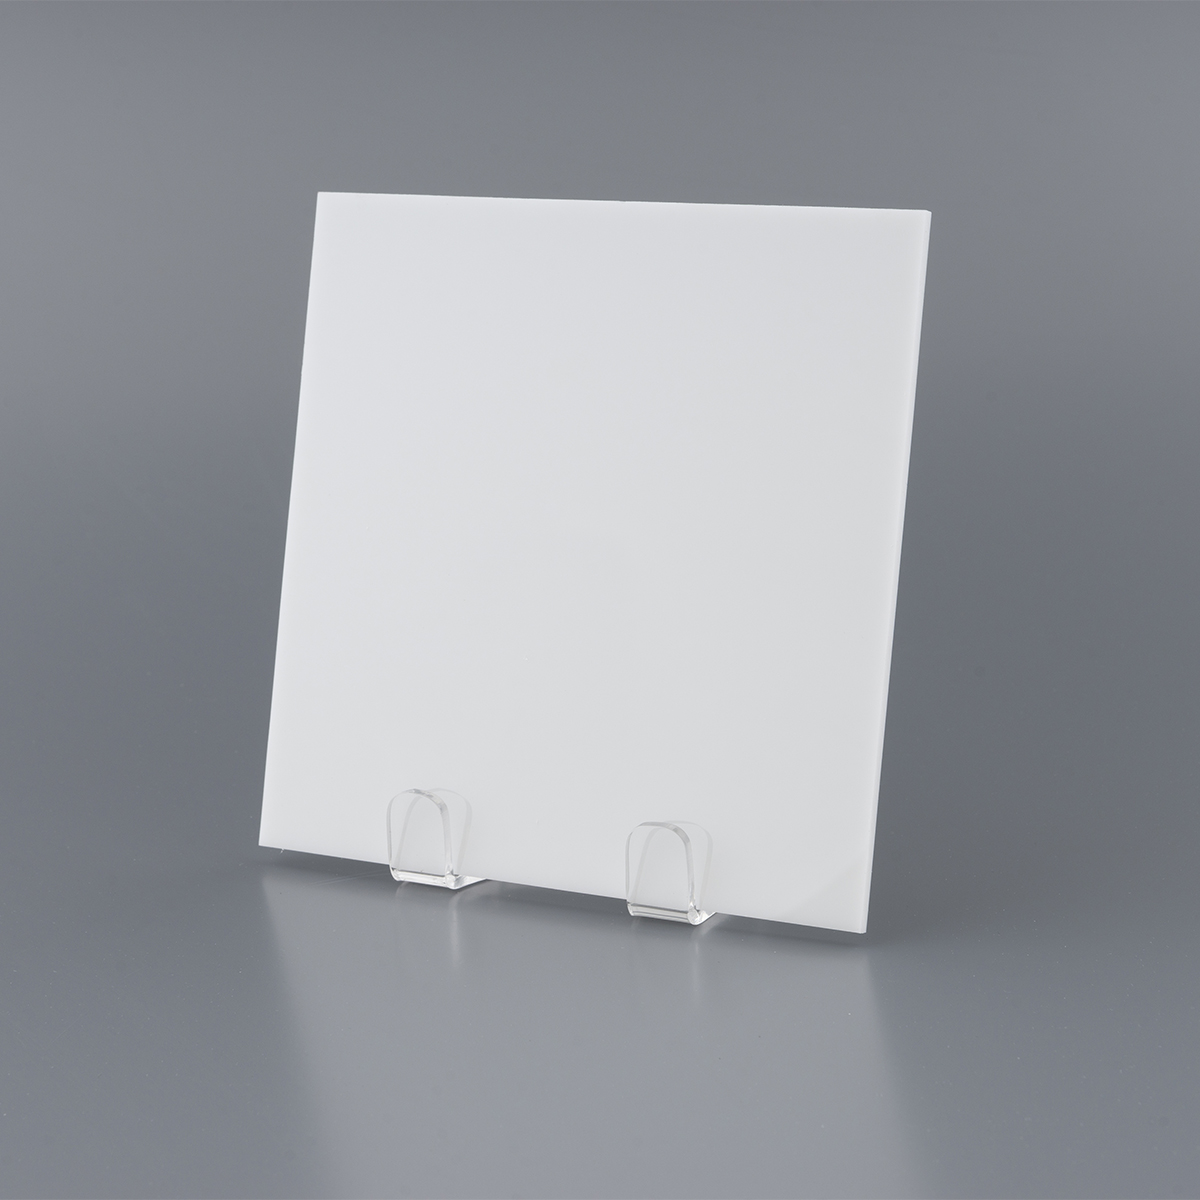 Opal Polycarbonate Sheet With 28 Light Transmission